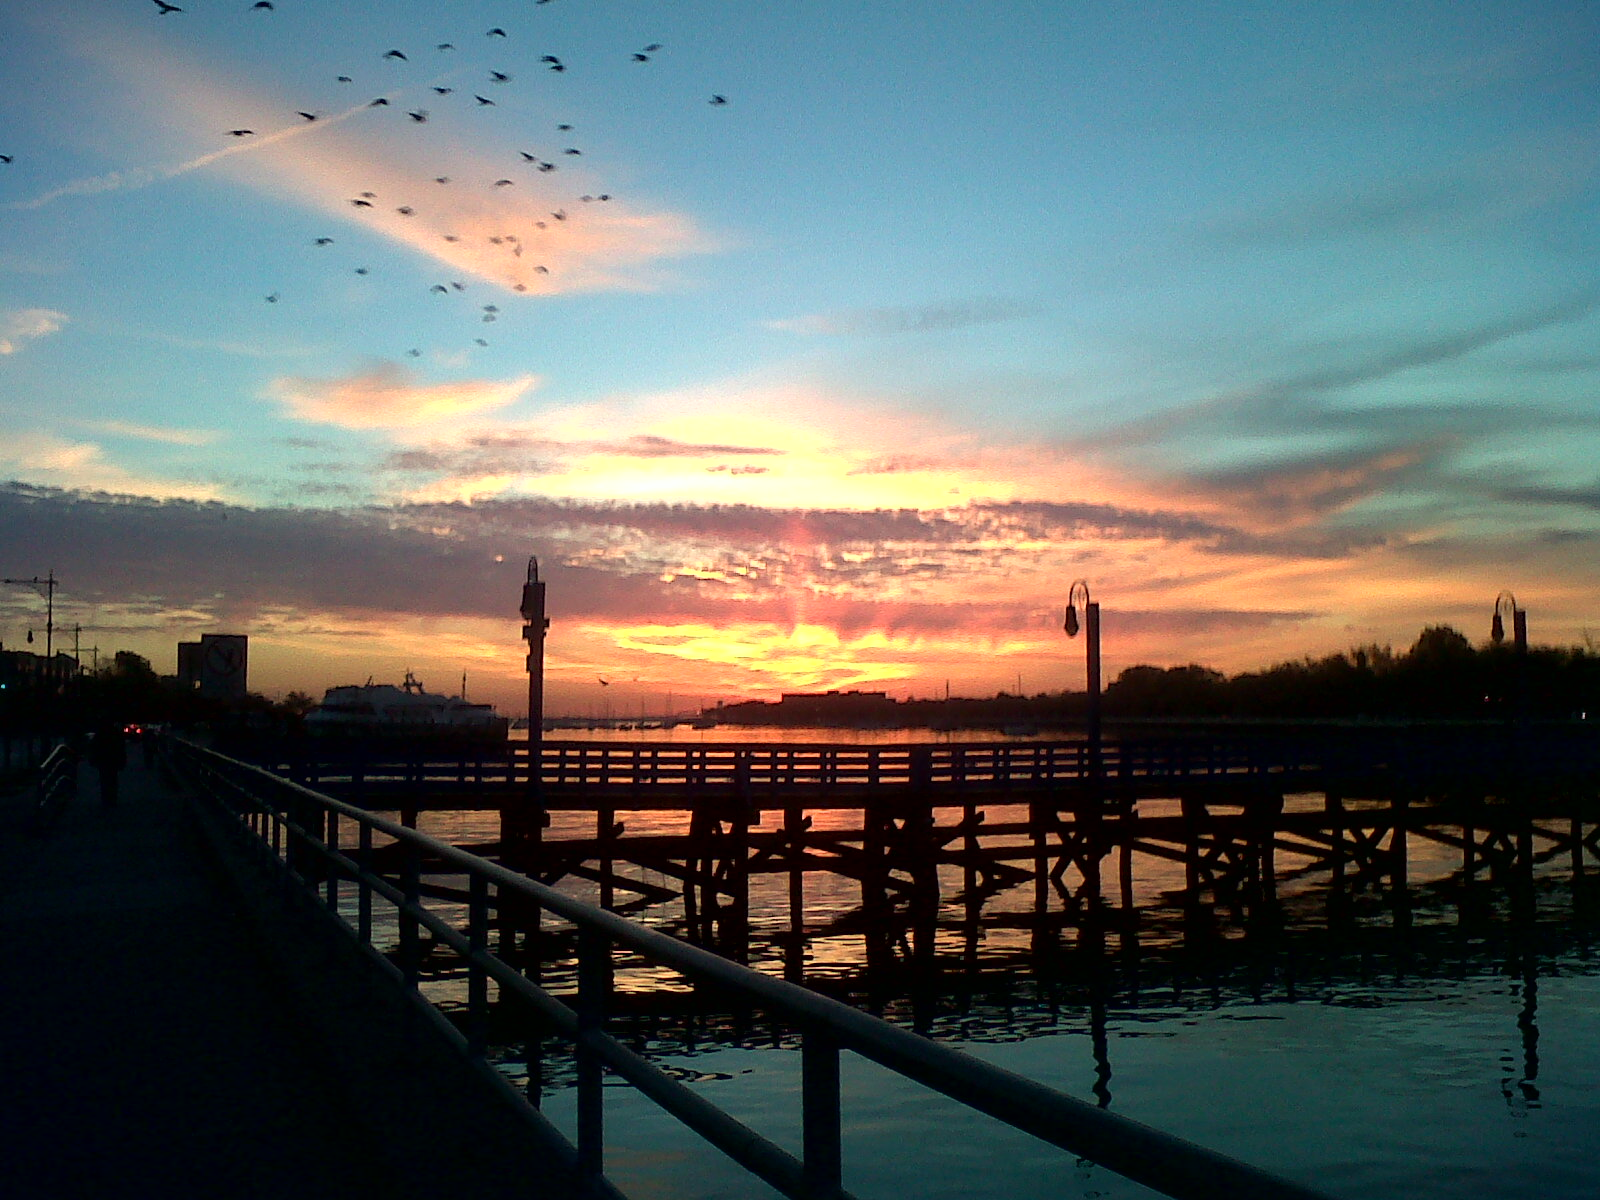 Sunrise over Sheepshead Bay Brooklyn, NY. Find out more